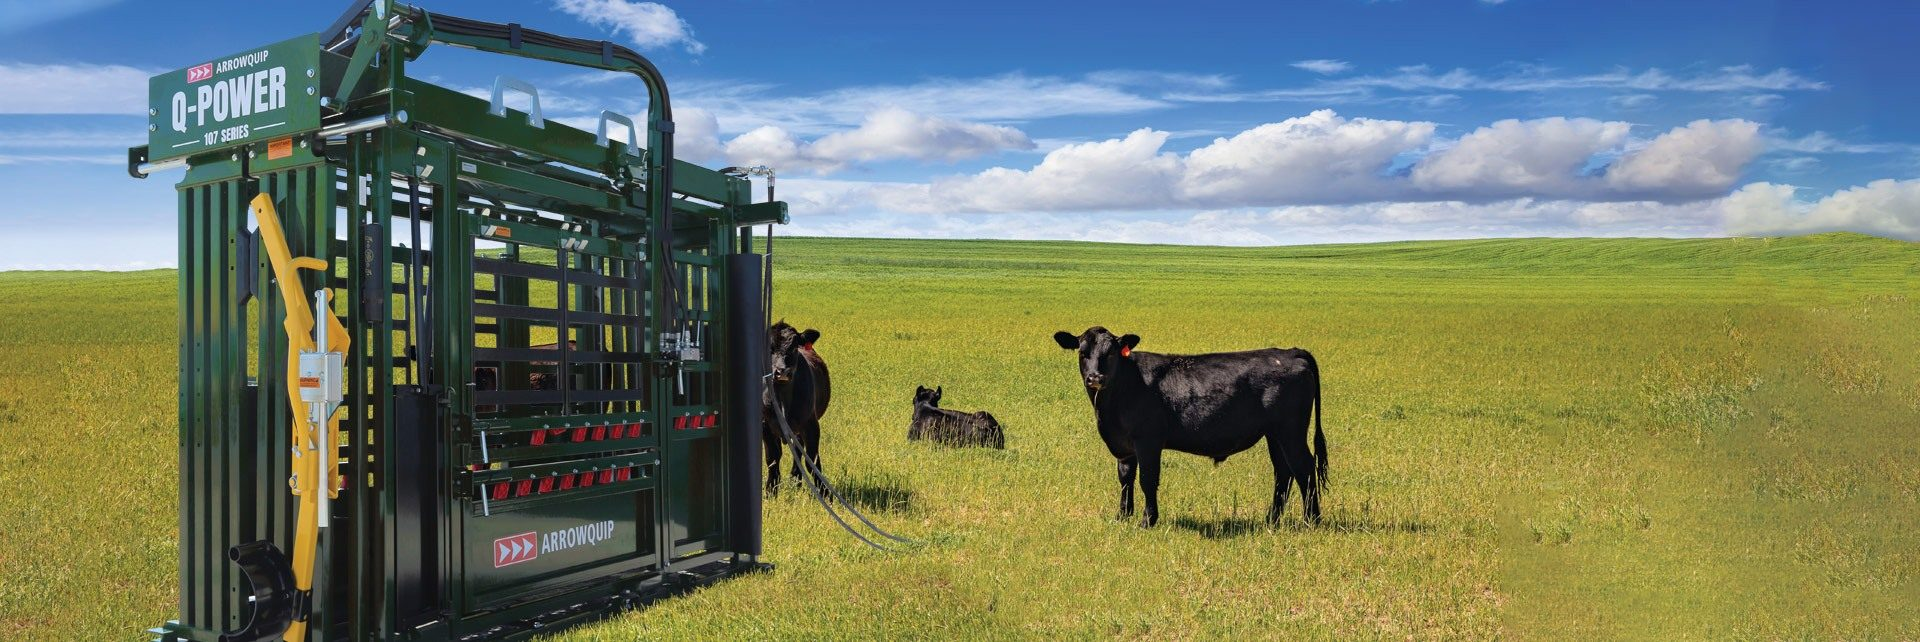 The Q-Power 107 Series hydraulic cattle chute in a field with cattle